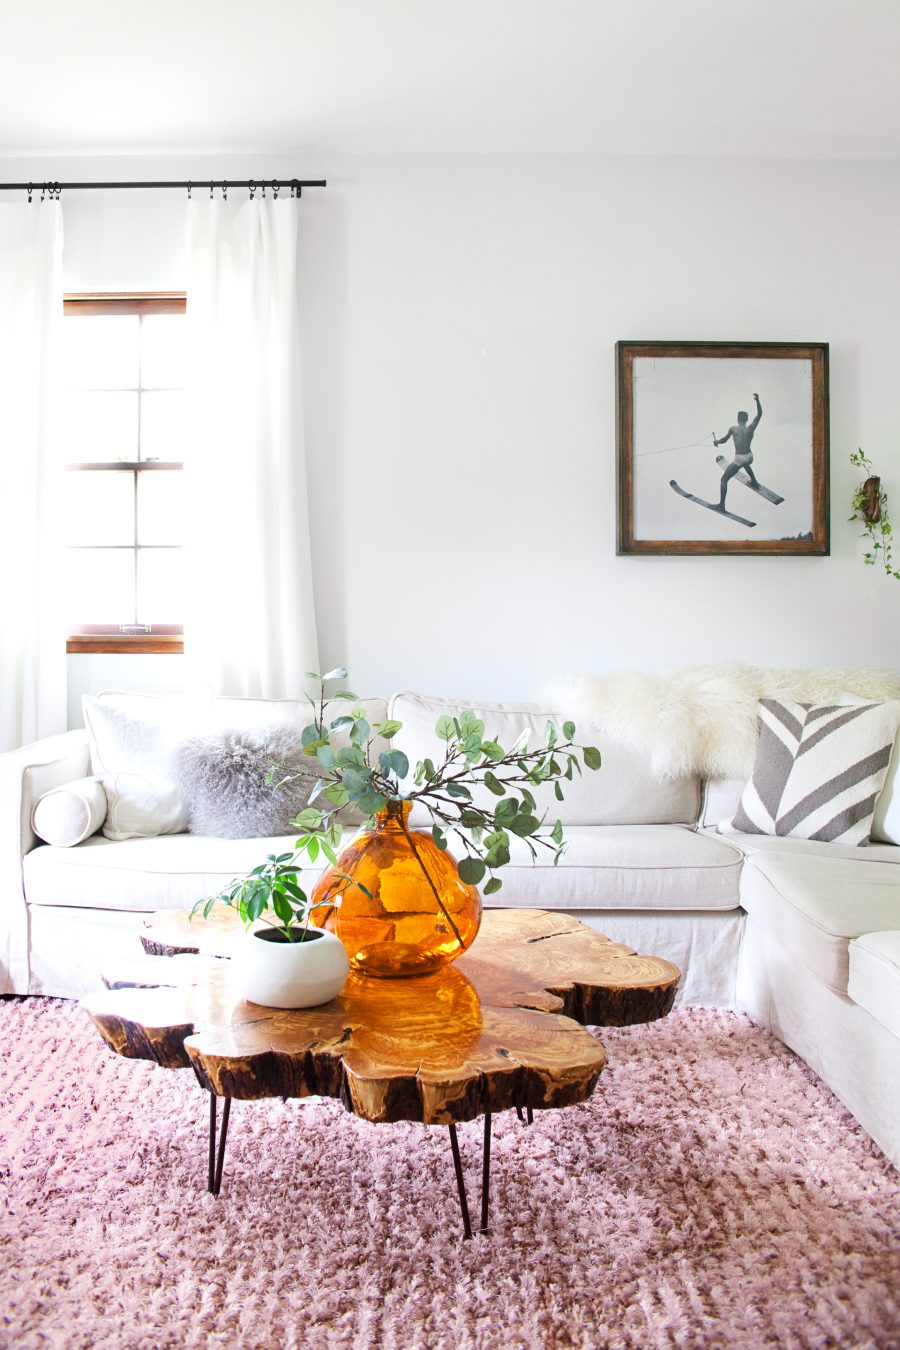 Our favorite amber glass home decor and accessories from copycatchic luxe living for less budget home decor and design looks for less